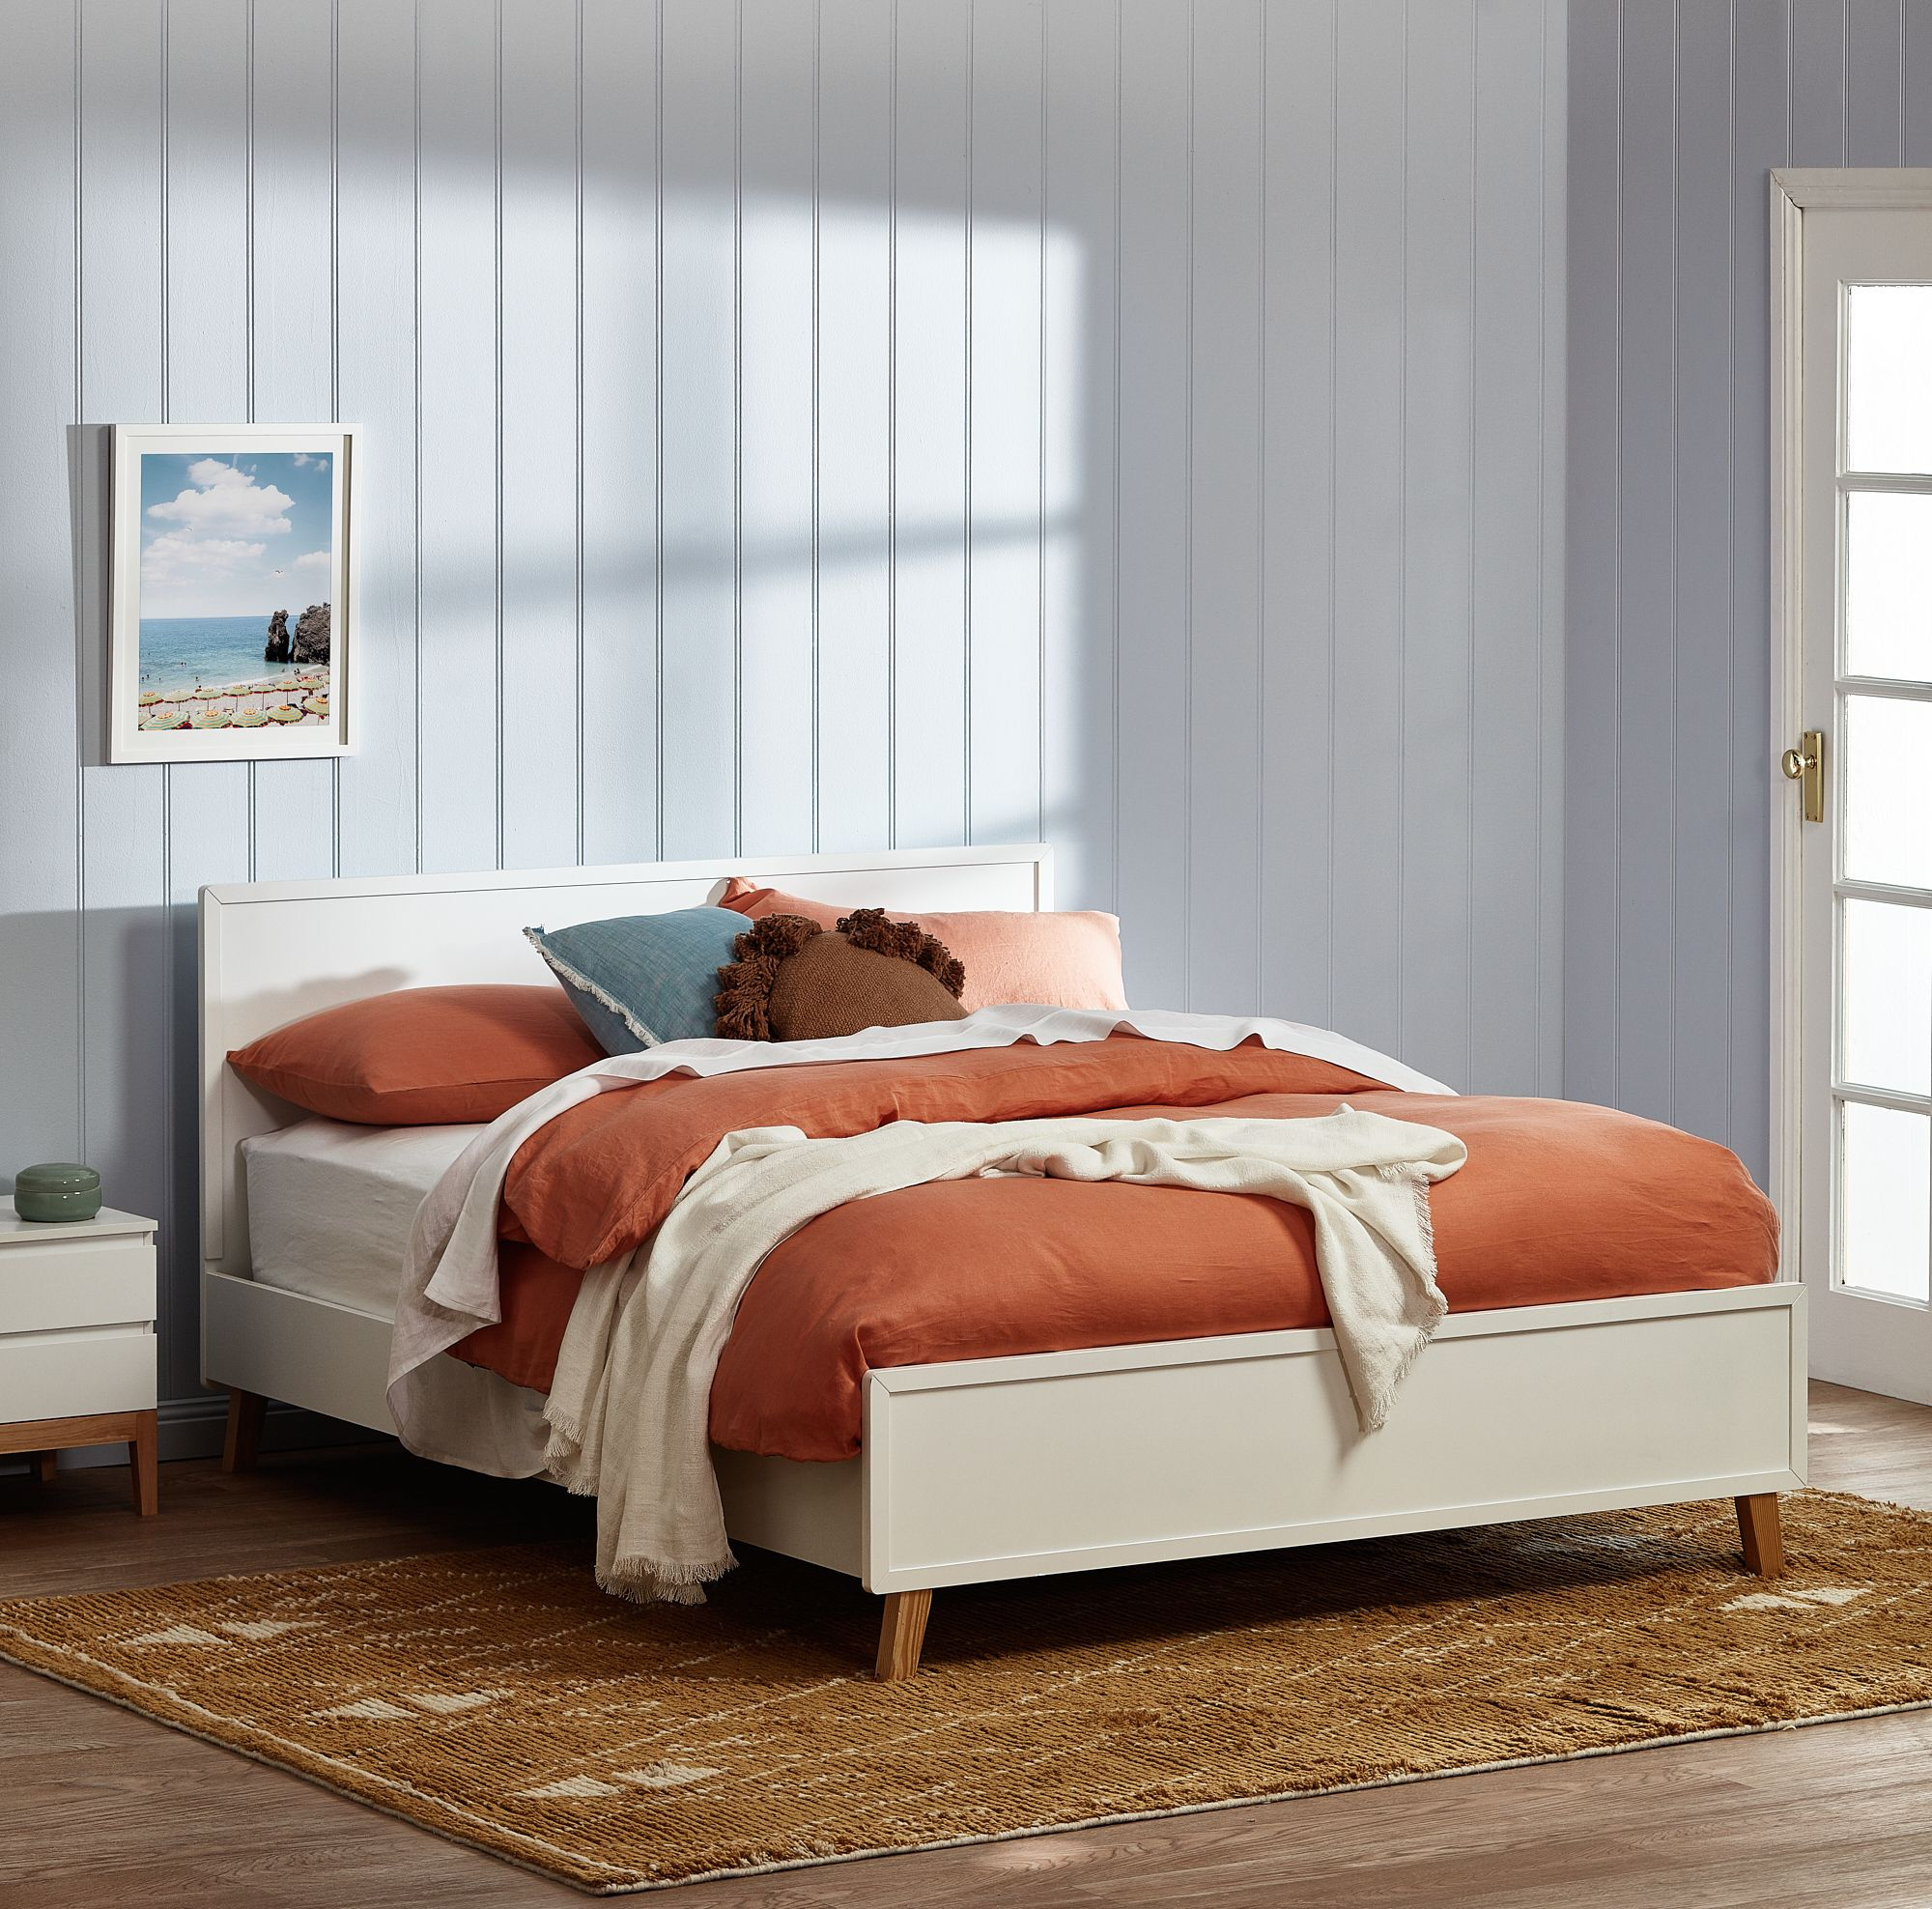 White Arctic Queen Bed Frame Bed frame, Furniture, Queen